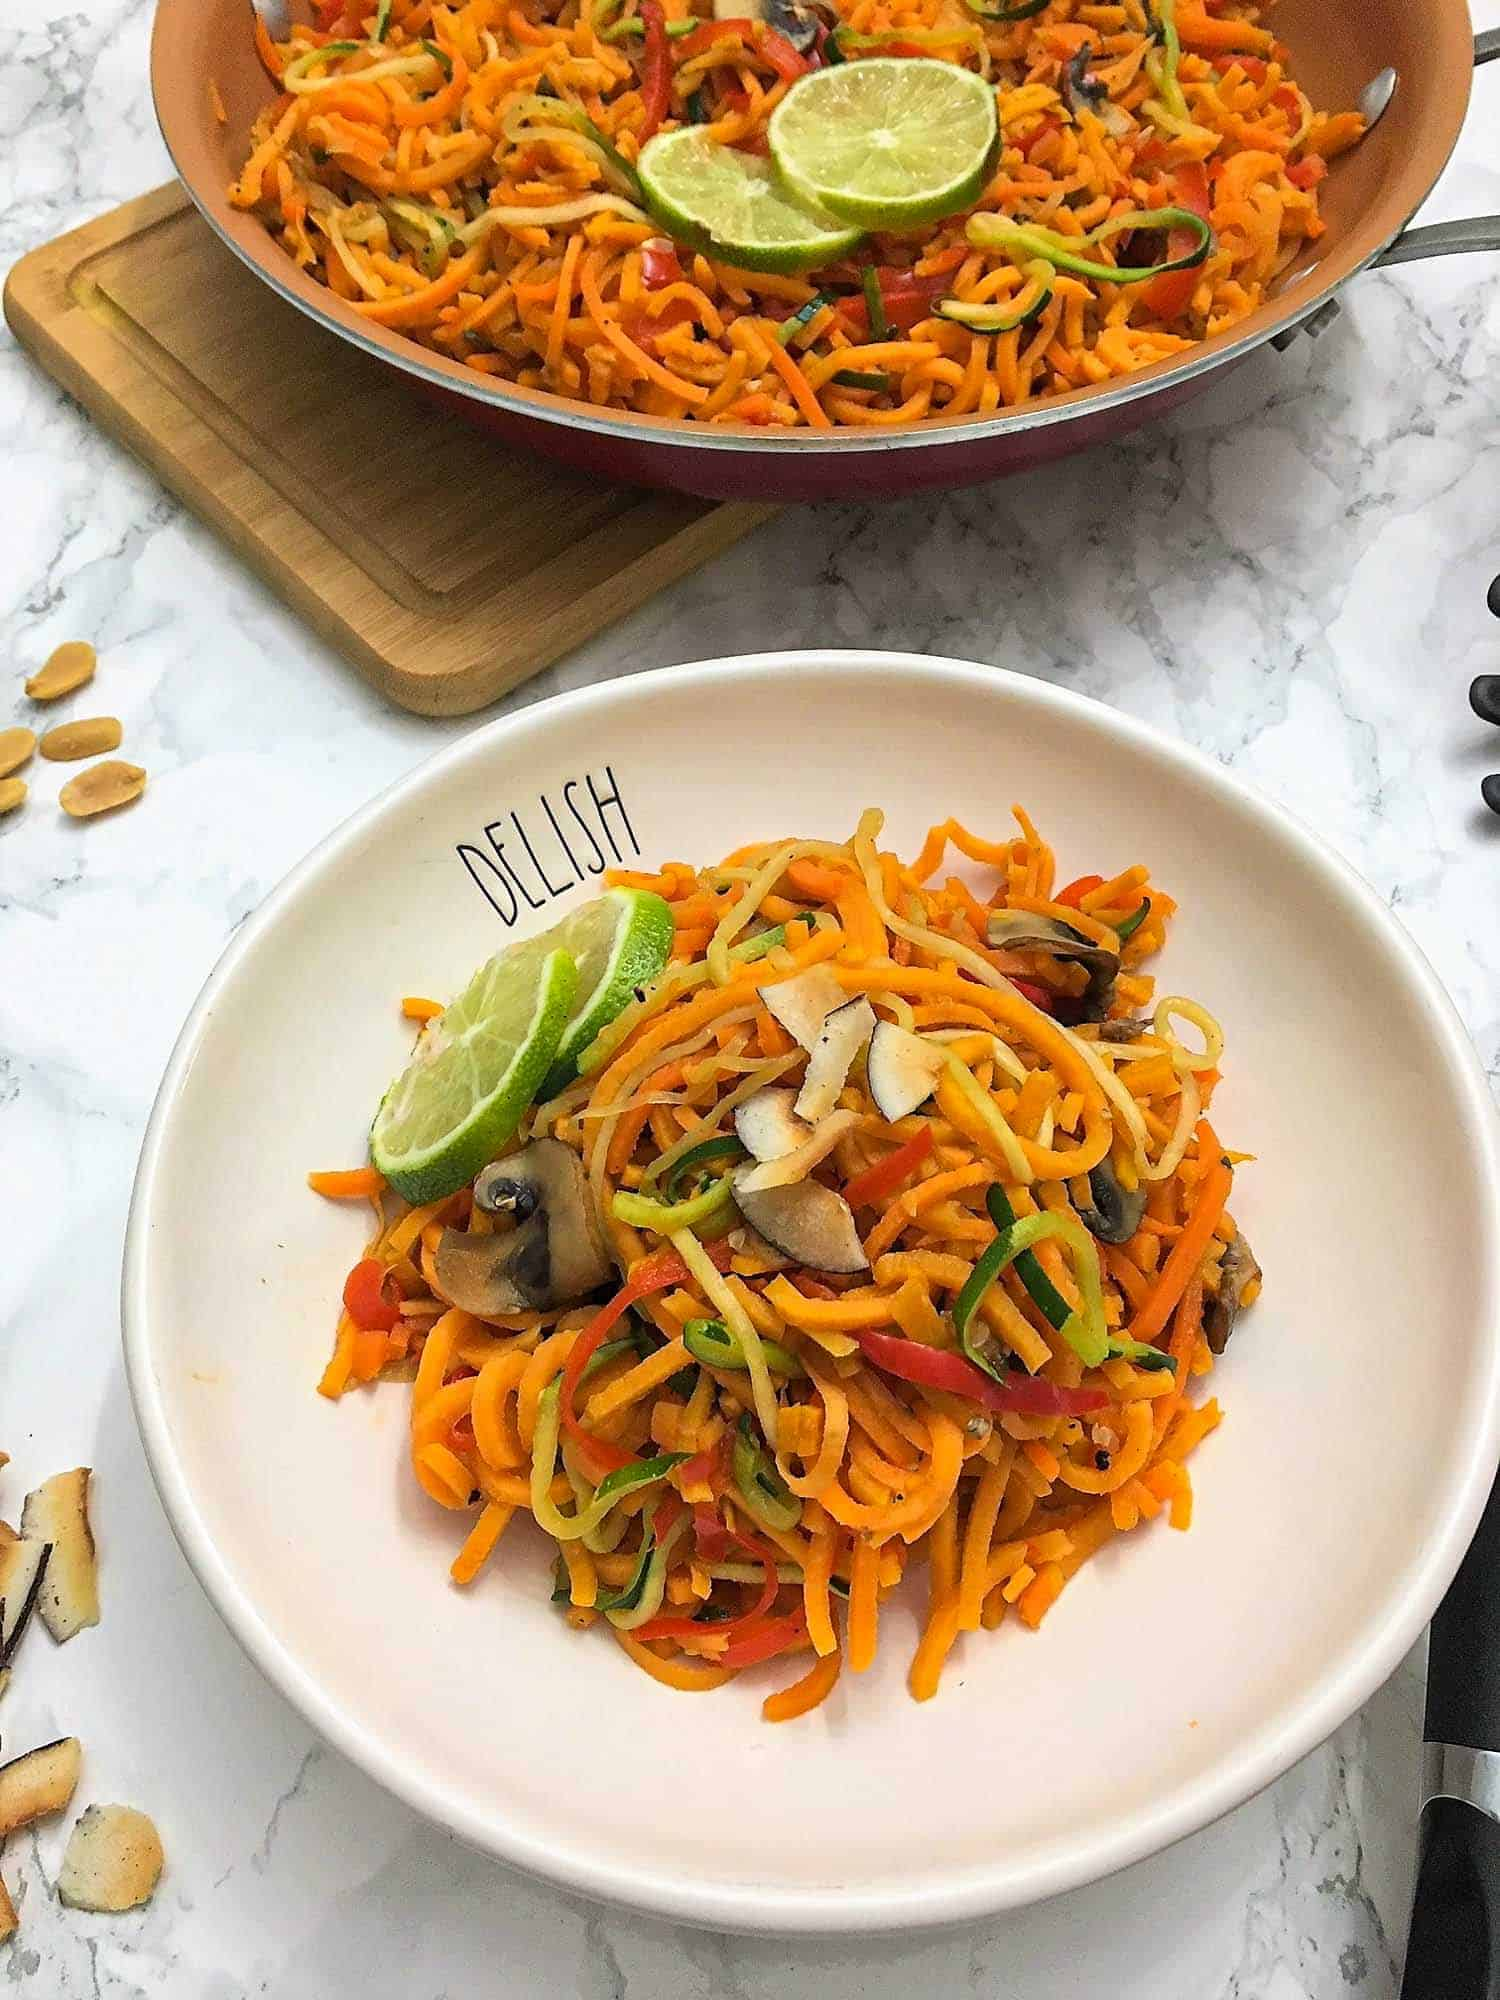 veggie noodles in plate with lime slices garnished over top